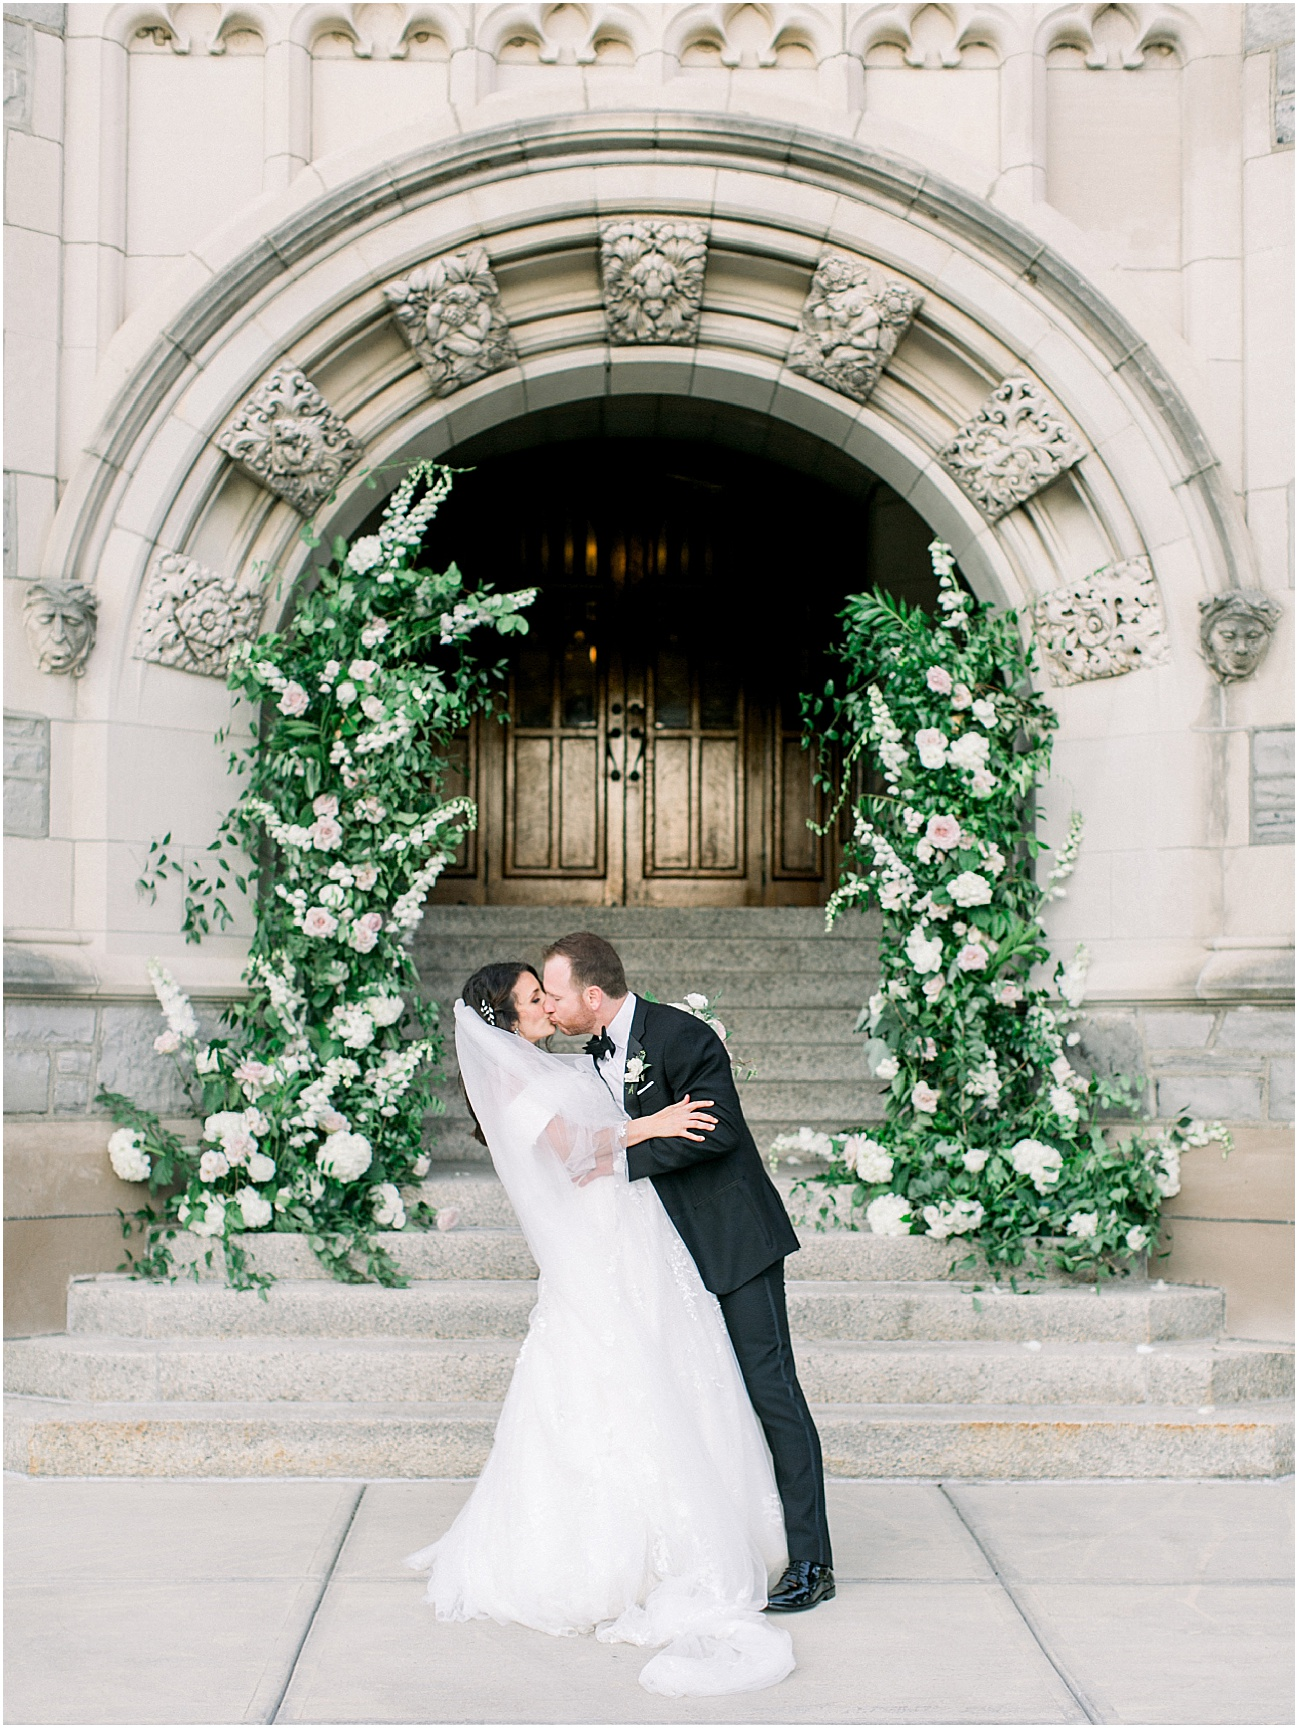 our_wedding_day_troy_NY_emma_willard_fairy_tale_royal_neutral_beauty_and_the_beast_moped_private_estate_cape_cod_boston_wedding_photographer_meredith_jane_photography_chris_kerr_photo_1993.jpg